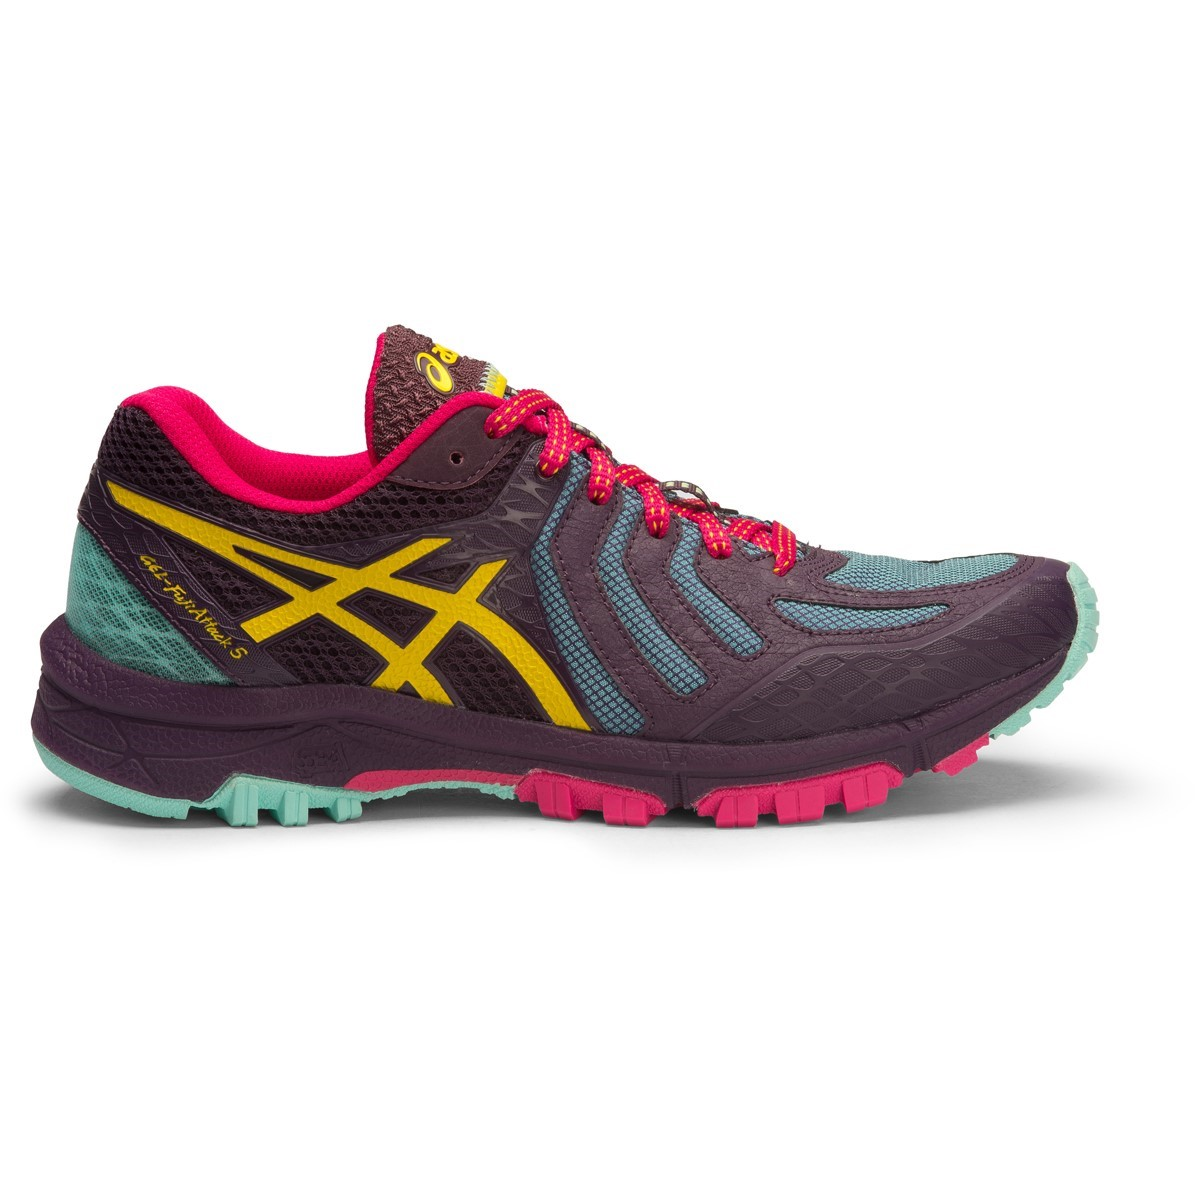 Asics Gel Fuji Attack 5 - Womens Trail Running Shoes - Eggplant/Lemon/Aruba